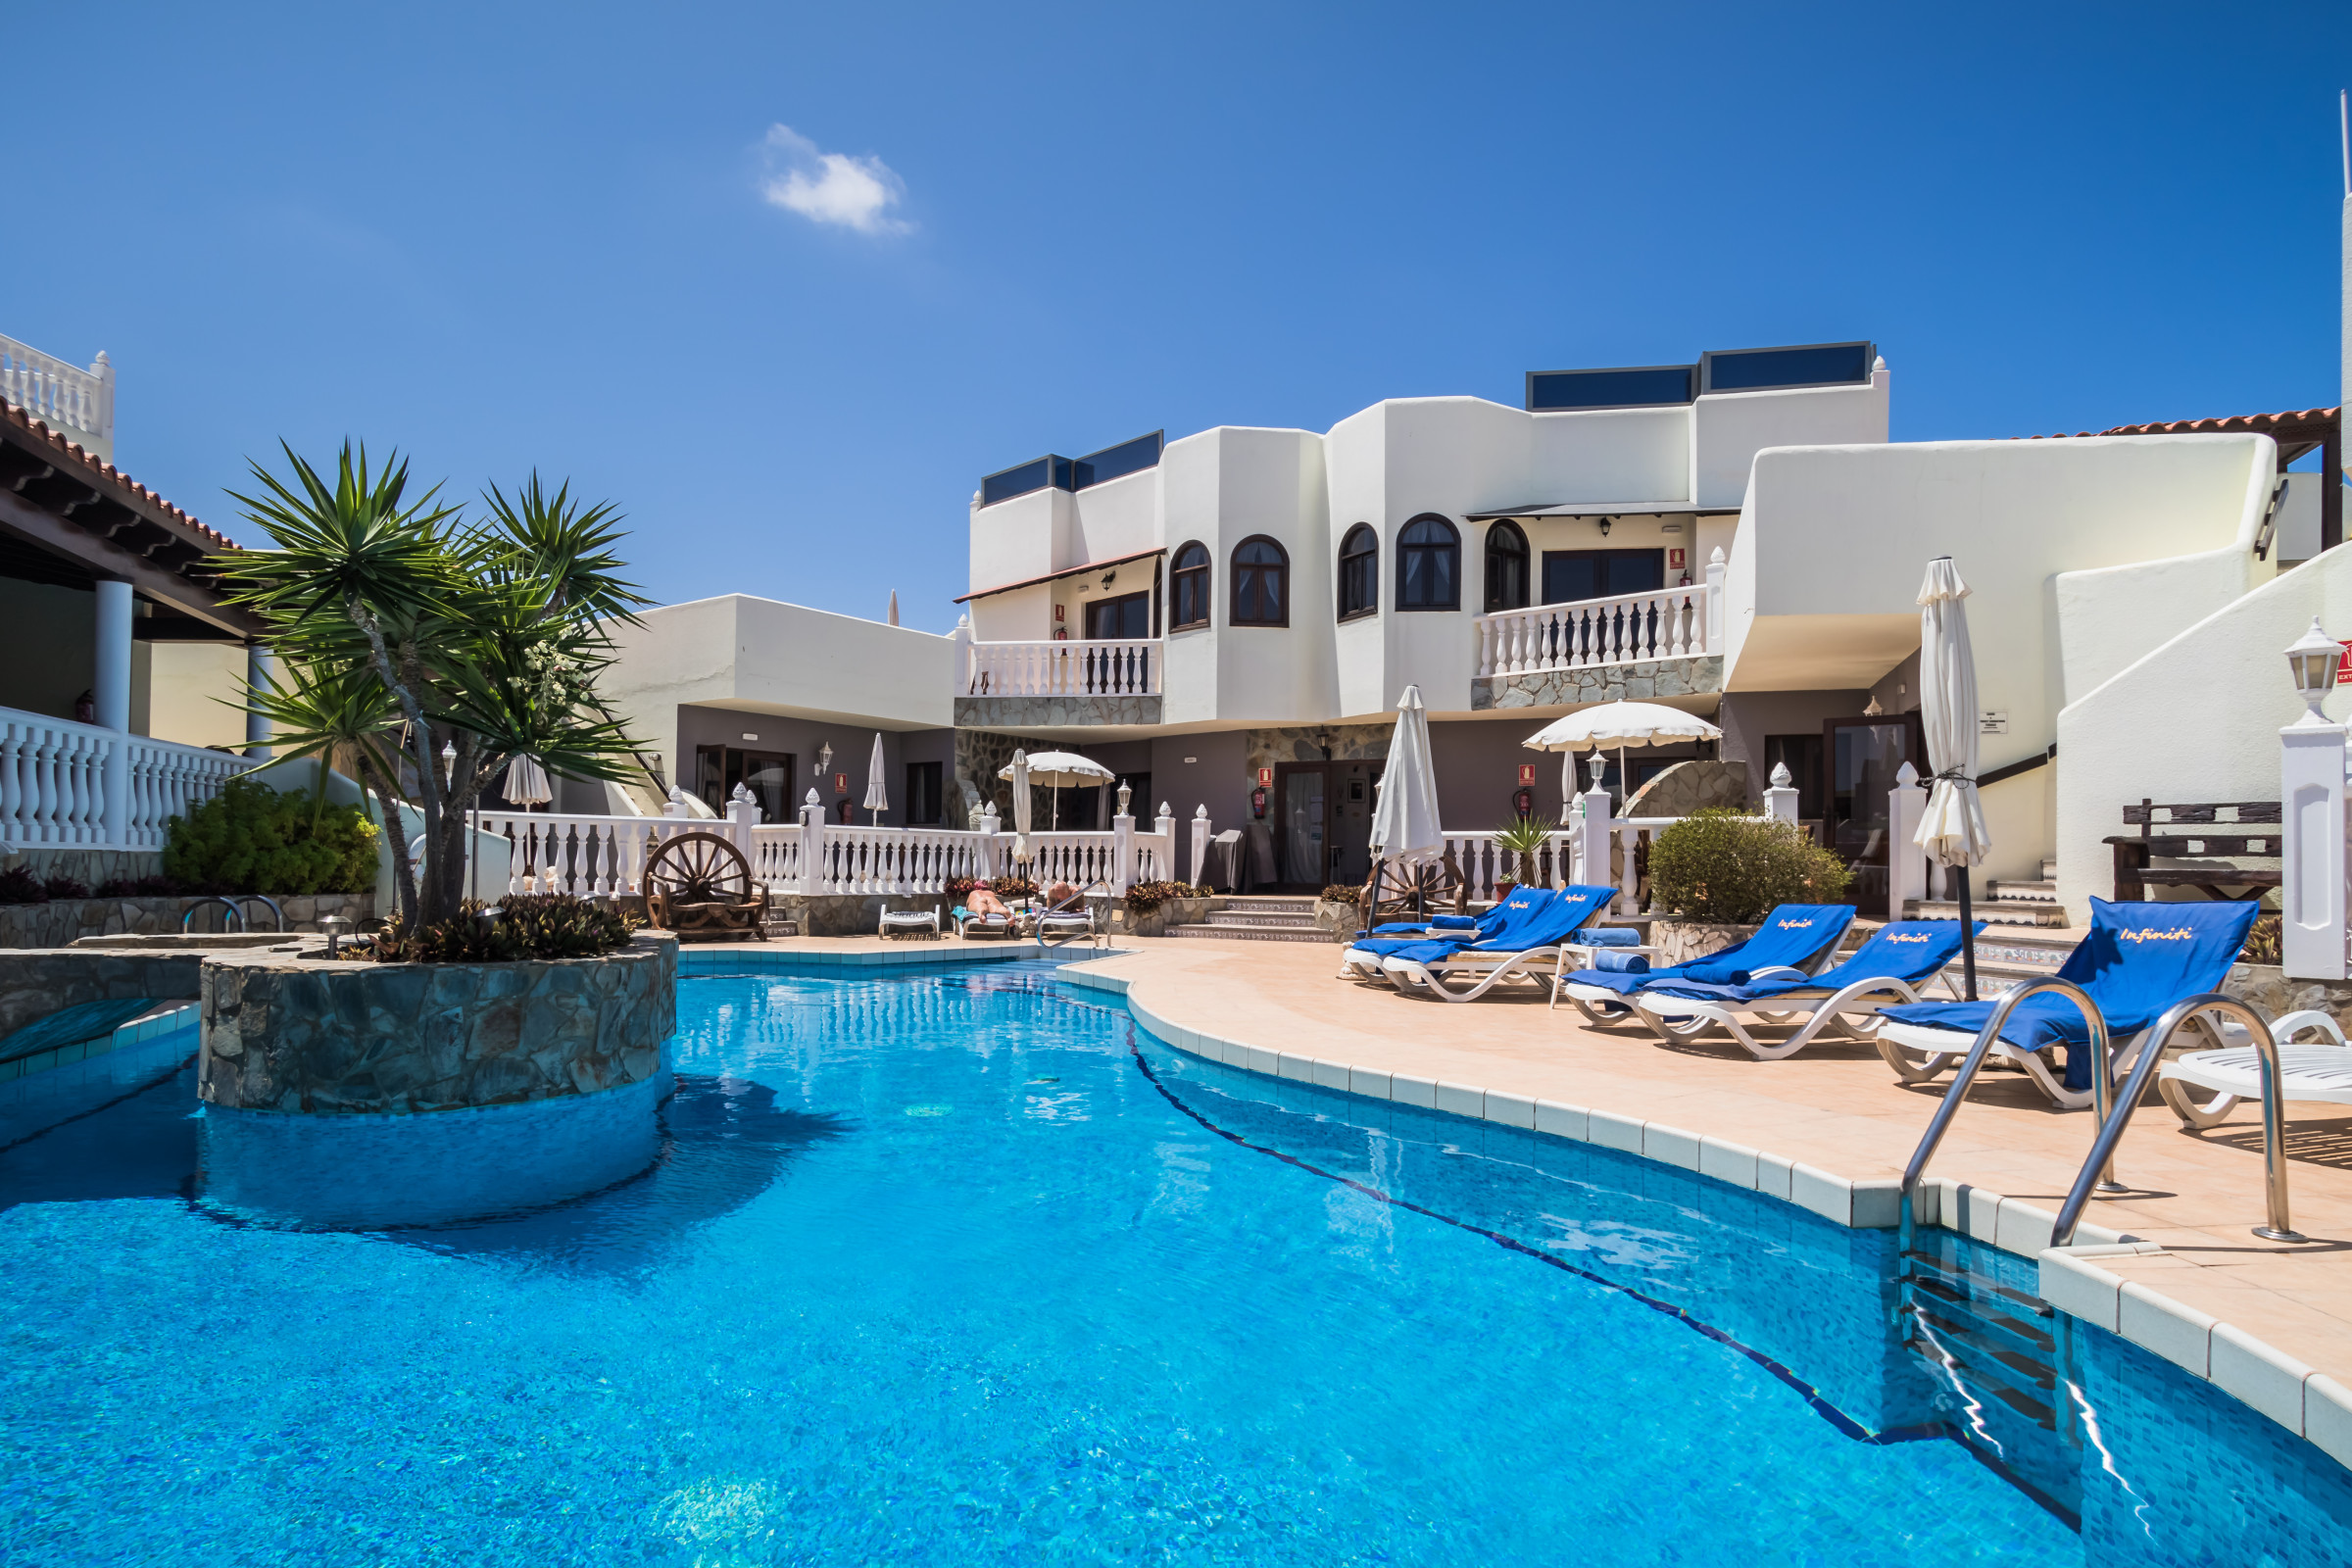 FKK Urlaub auf Fuerteventura - Naturist Sun Club Corralejo - Adults only Resort